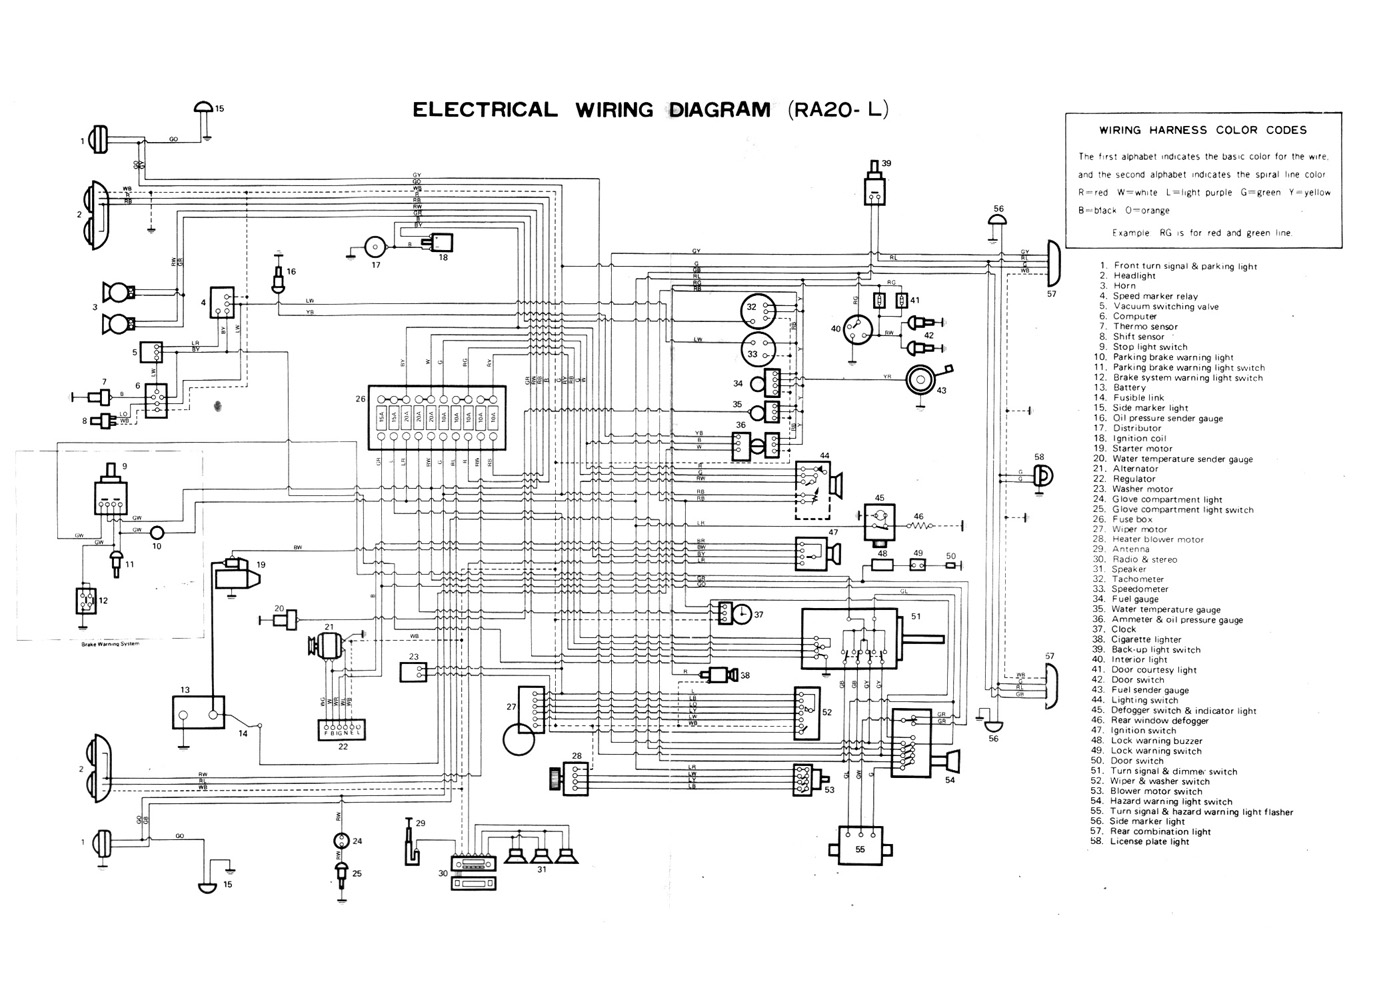 Fl70 Fuse Box Diagram Ford F53 Chassis Fuse Diagram Wiring